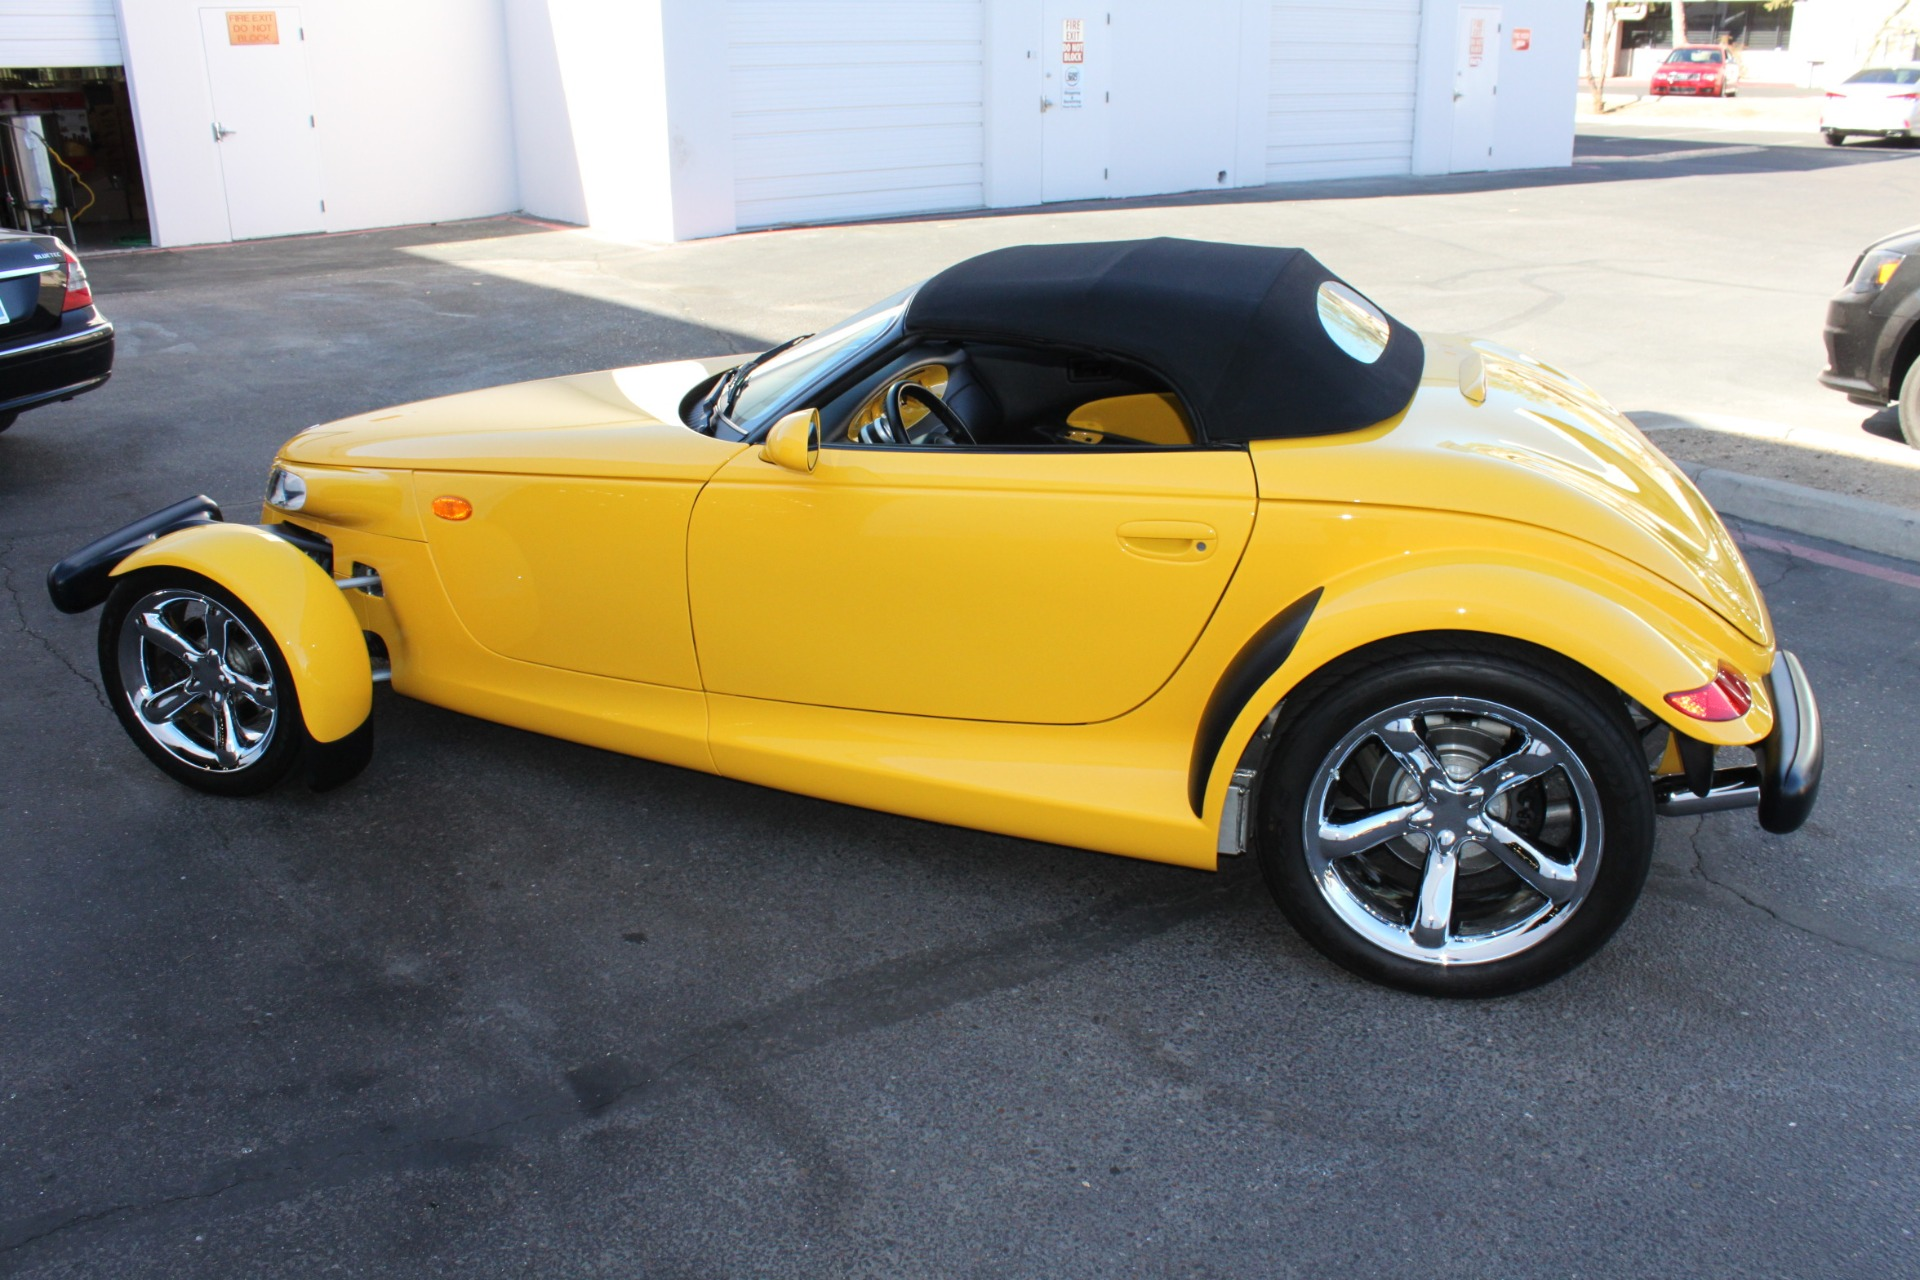 Used-2002-Chrysler-Prowler-Ford